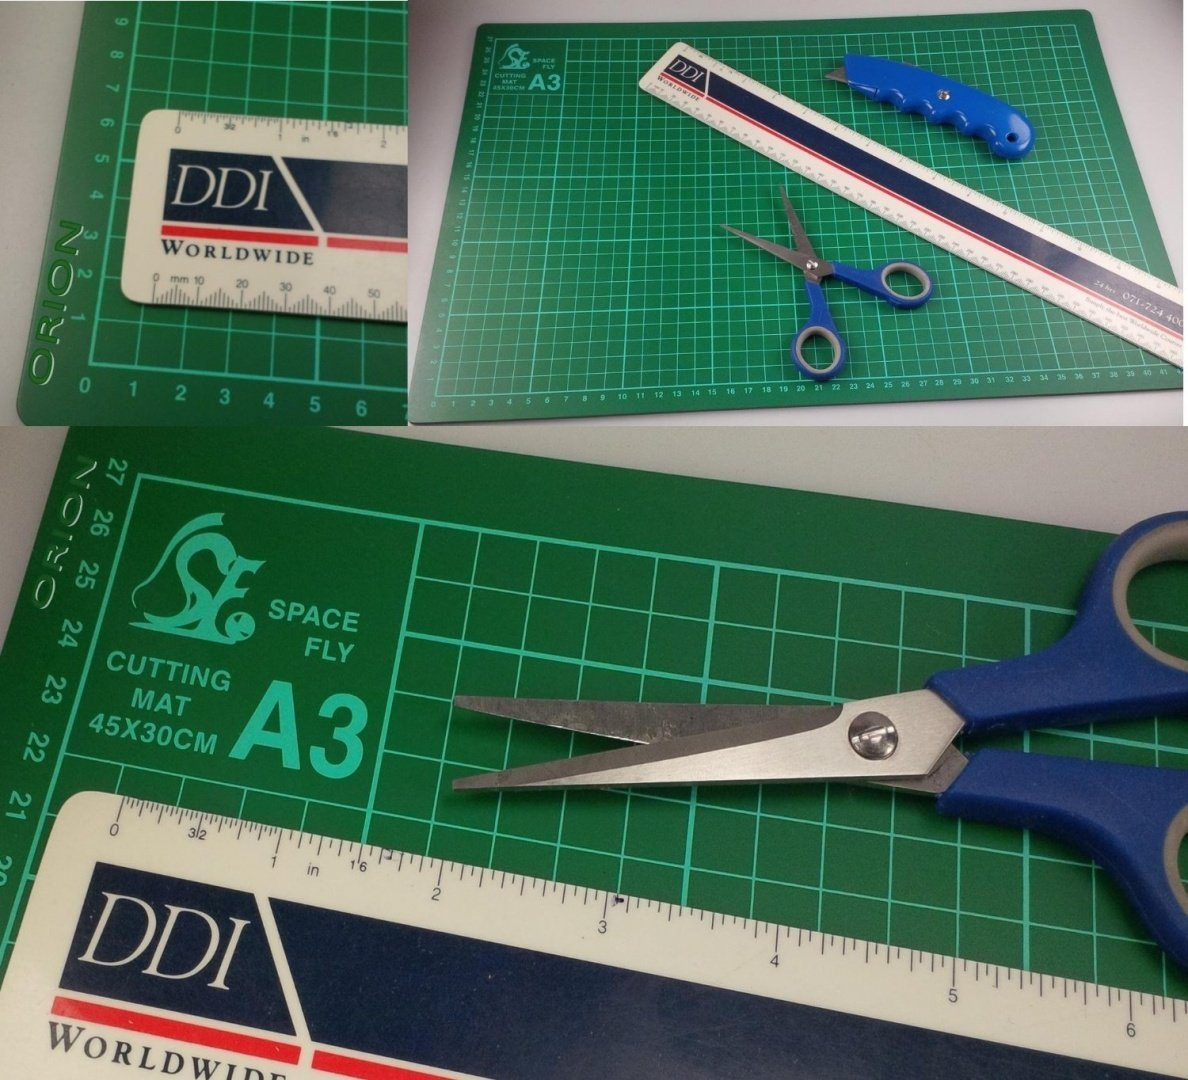 A3 Size Non Slip Cutting Mat Board Ideal for Crafts 30 cm X 45 cm (300mm x 450mm) OGB